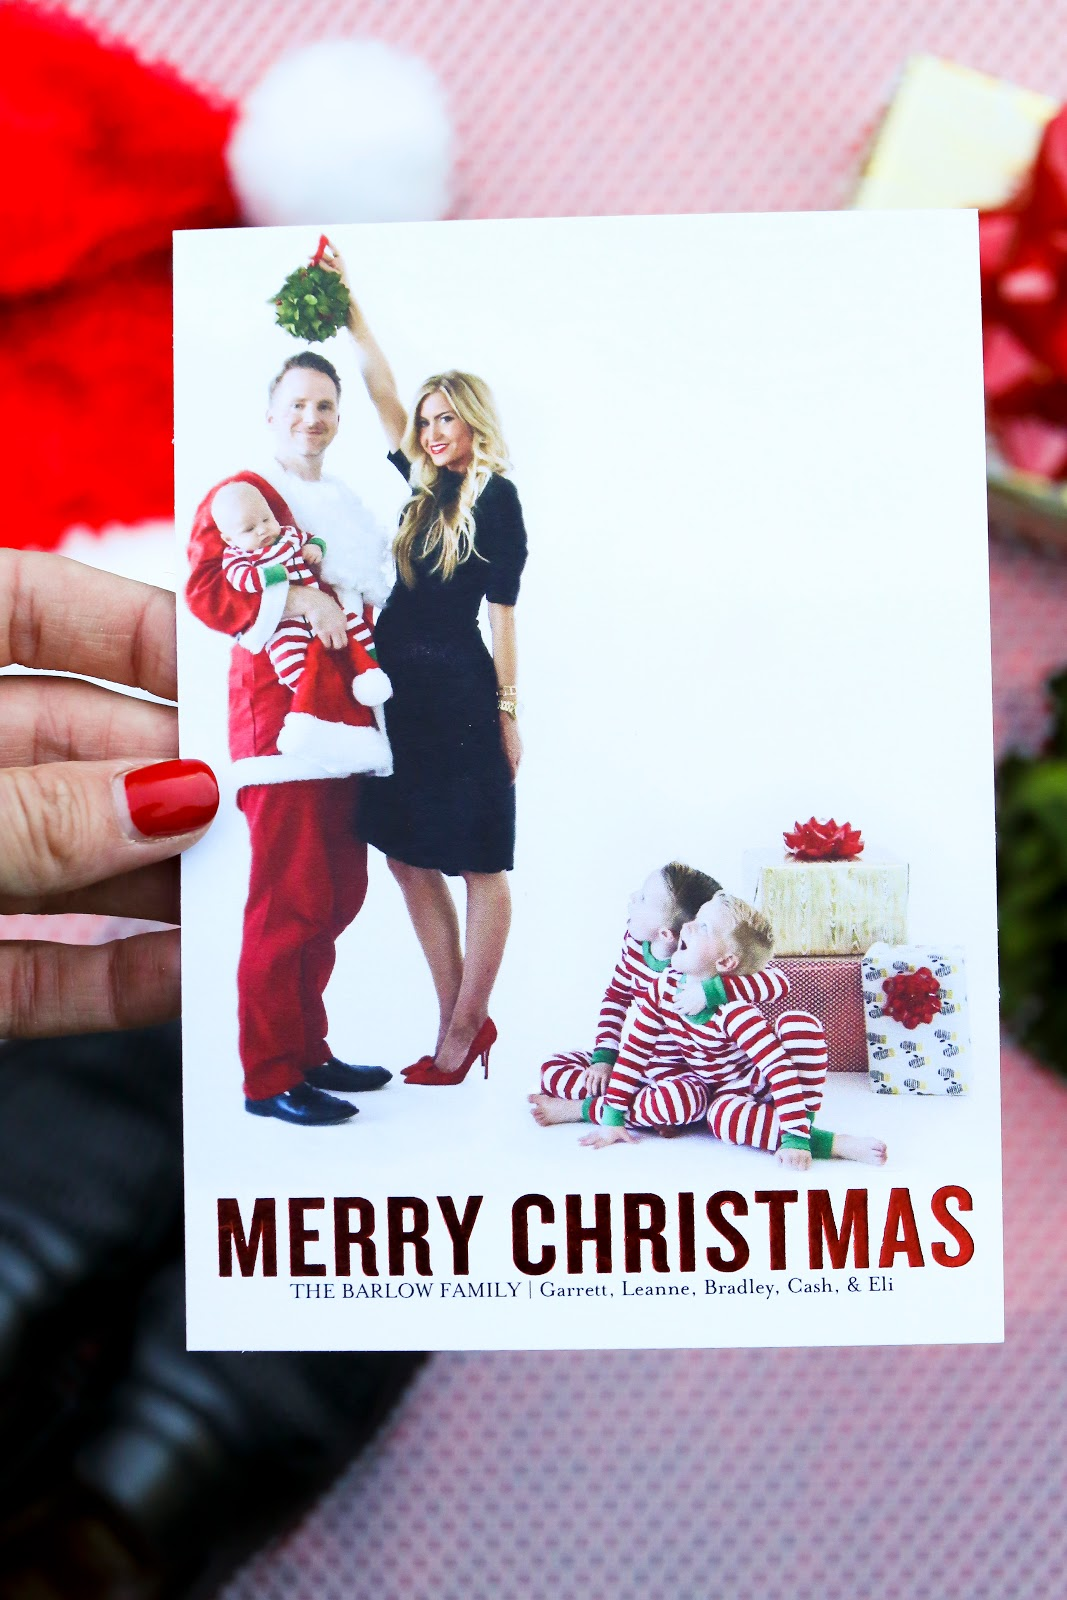 i listed 3 tips on how to make your christmas cards unique and memorable below